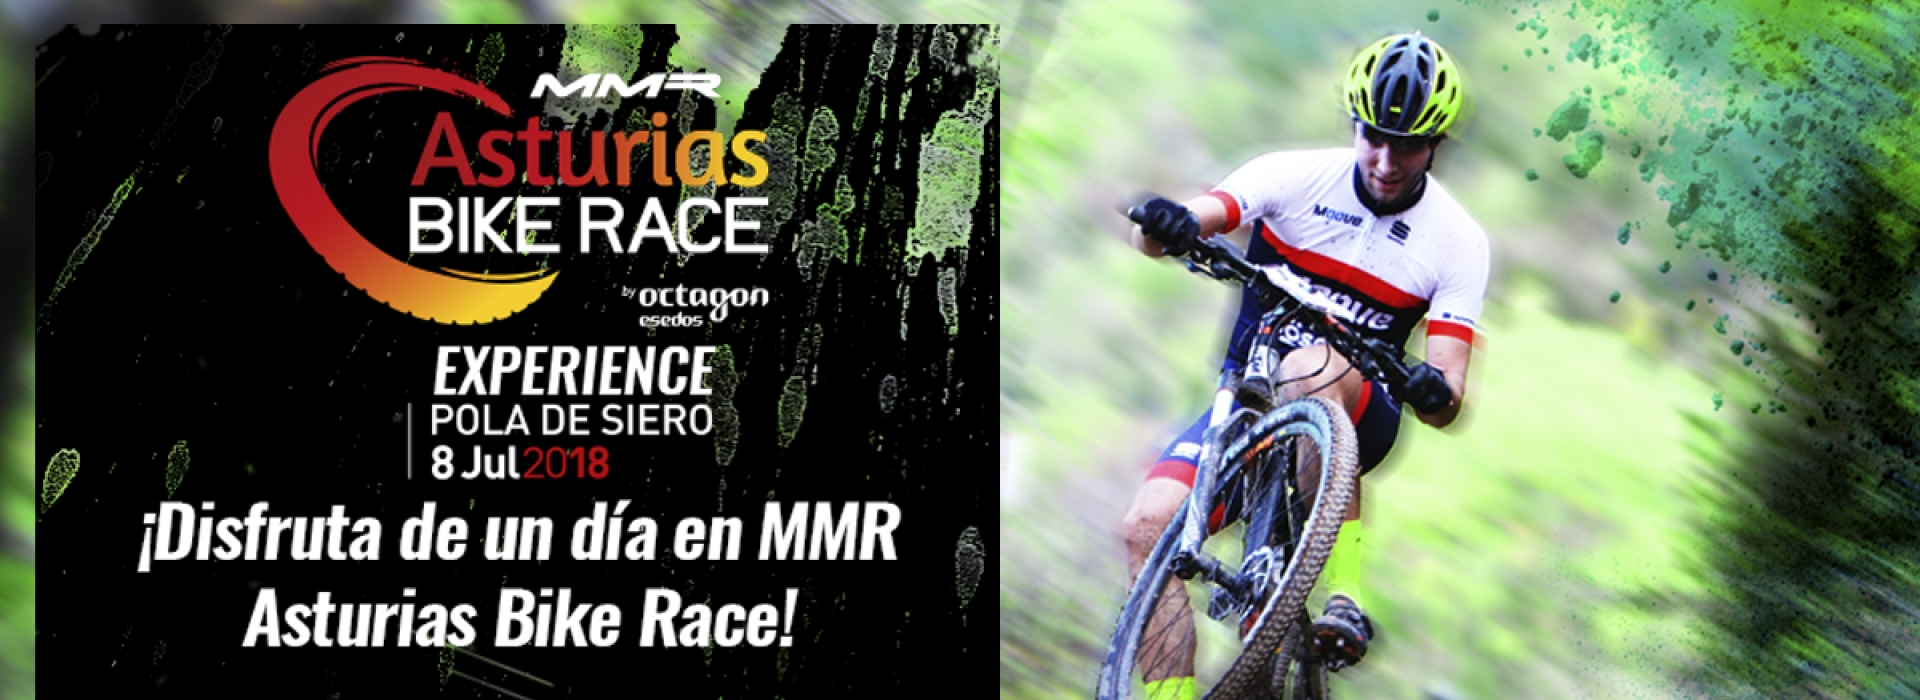 Enjoy a day at MMR Asturias Bike Race!